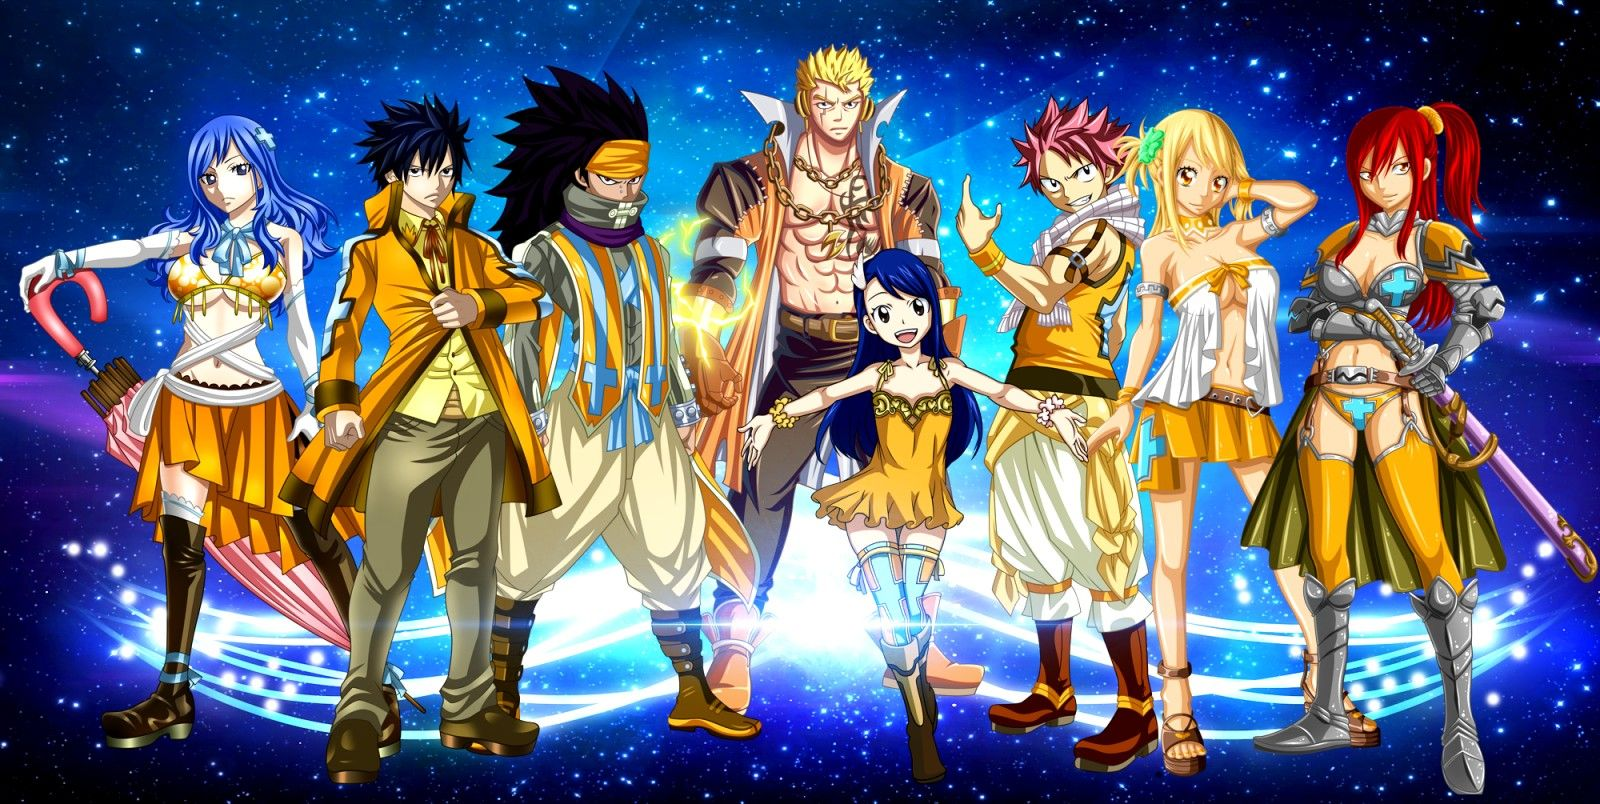 Fairy Tail Fantasia Wallpaper Hd Desktop Read Fairy Tail